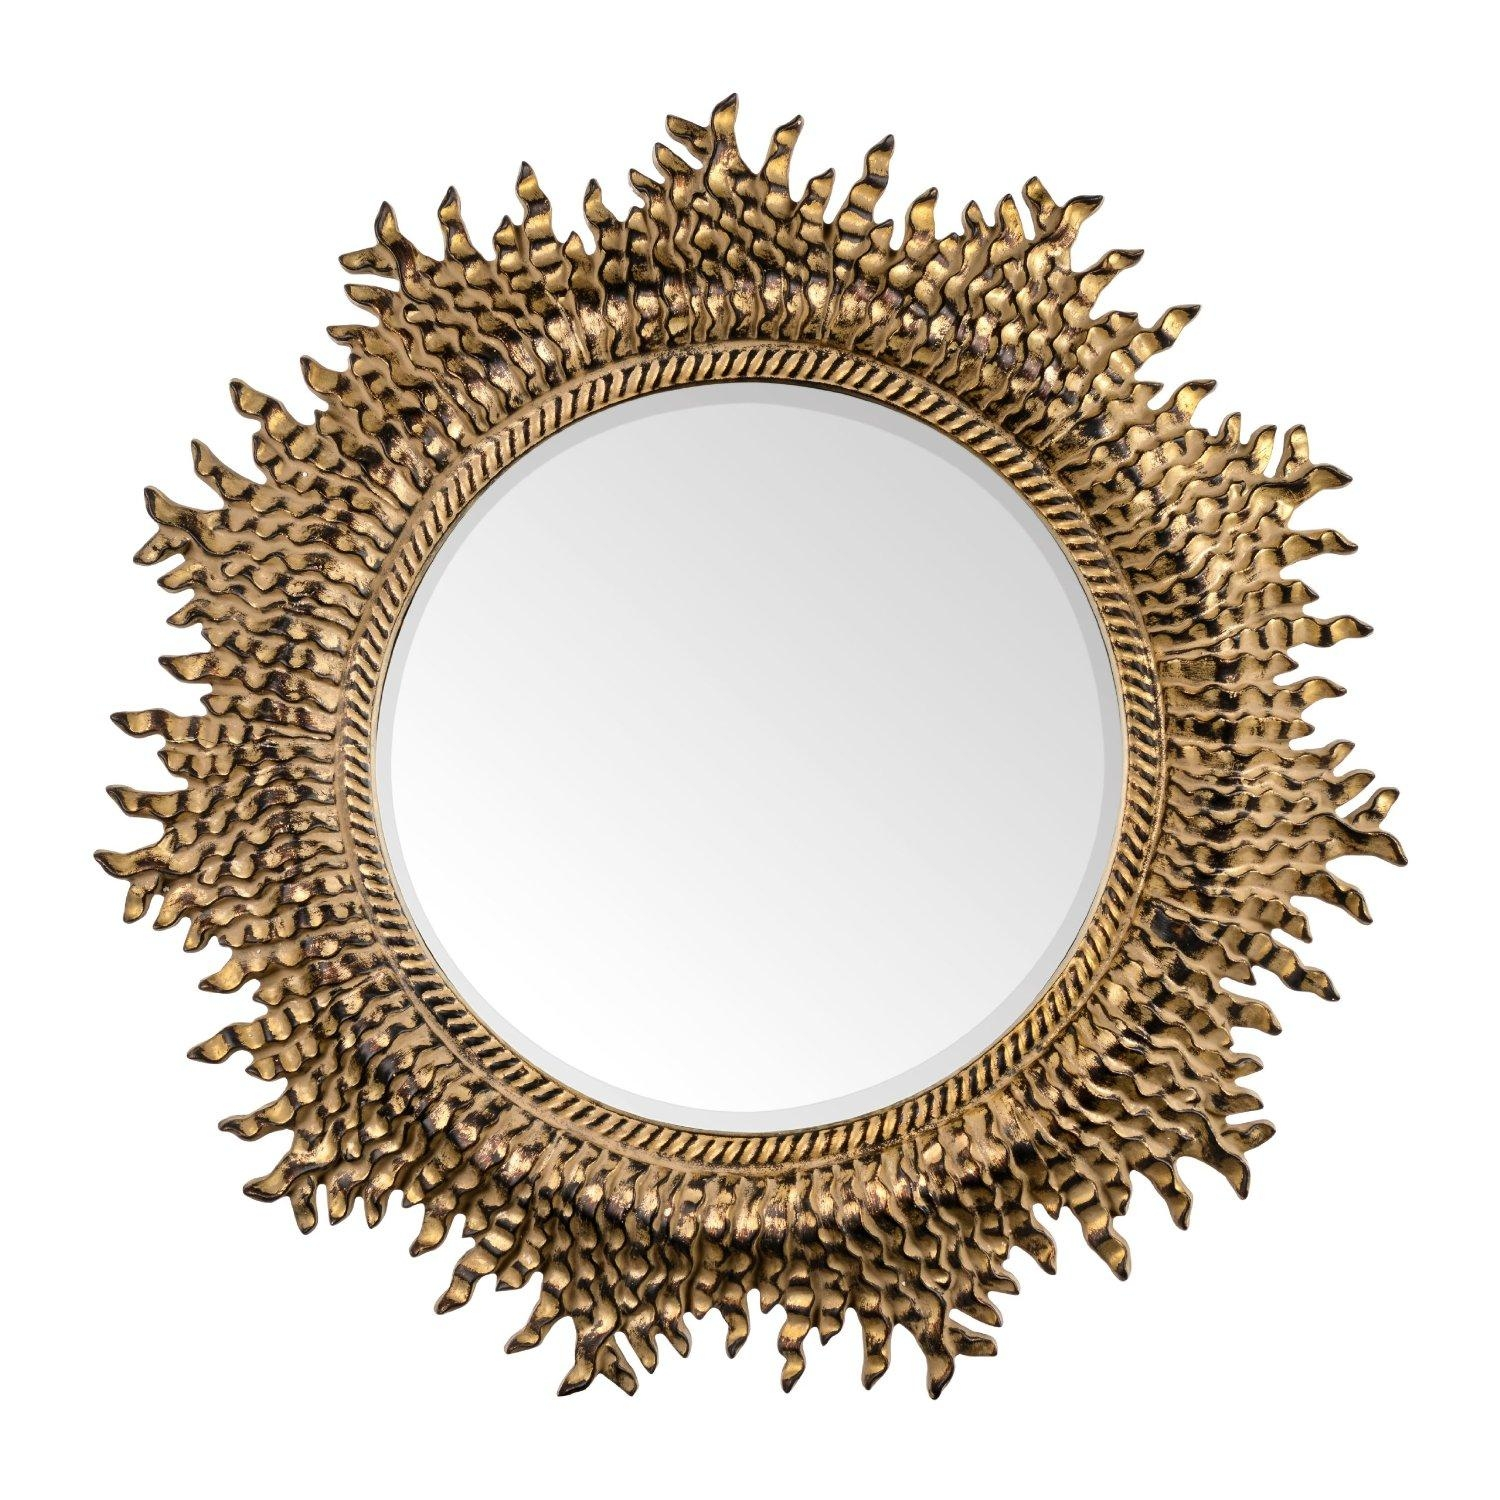 16 Ornate Mirrors For Your Home | Qosy Throughout Gold Ornate Mirrors (View 17 of 20)